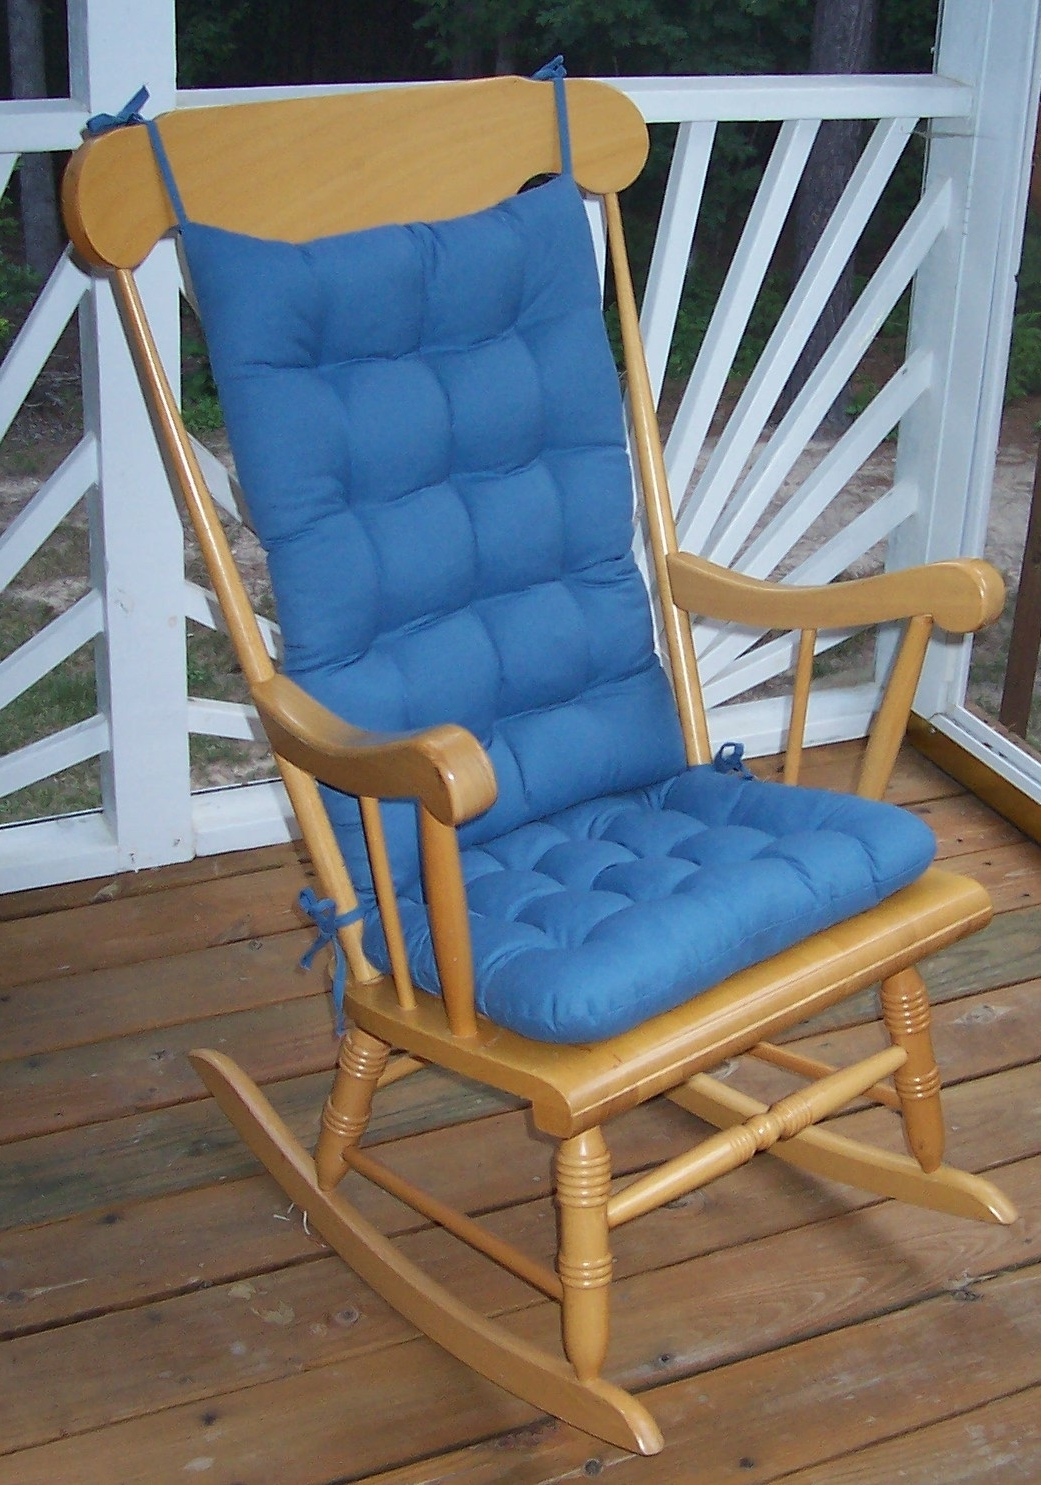 Newest Rocking Chair Cushion Sets And More – Clearance!! Intended For Rocking Chair Cushions For Outdoor (View 5 of 15)